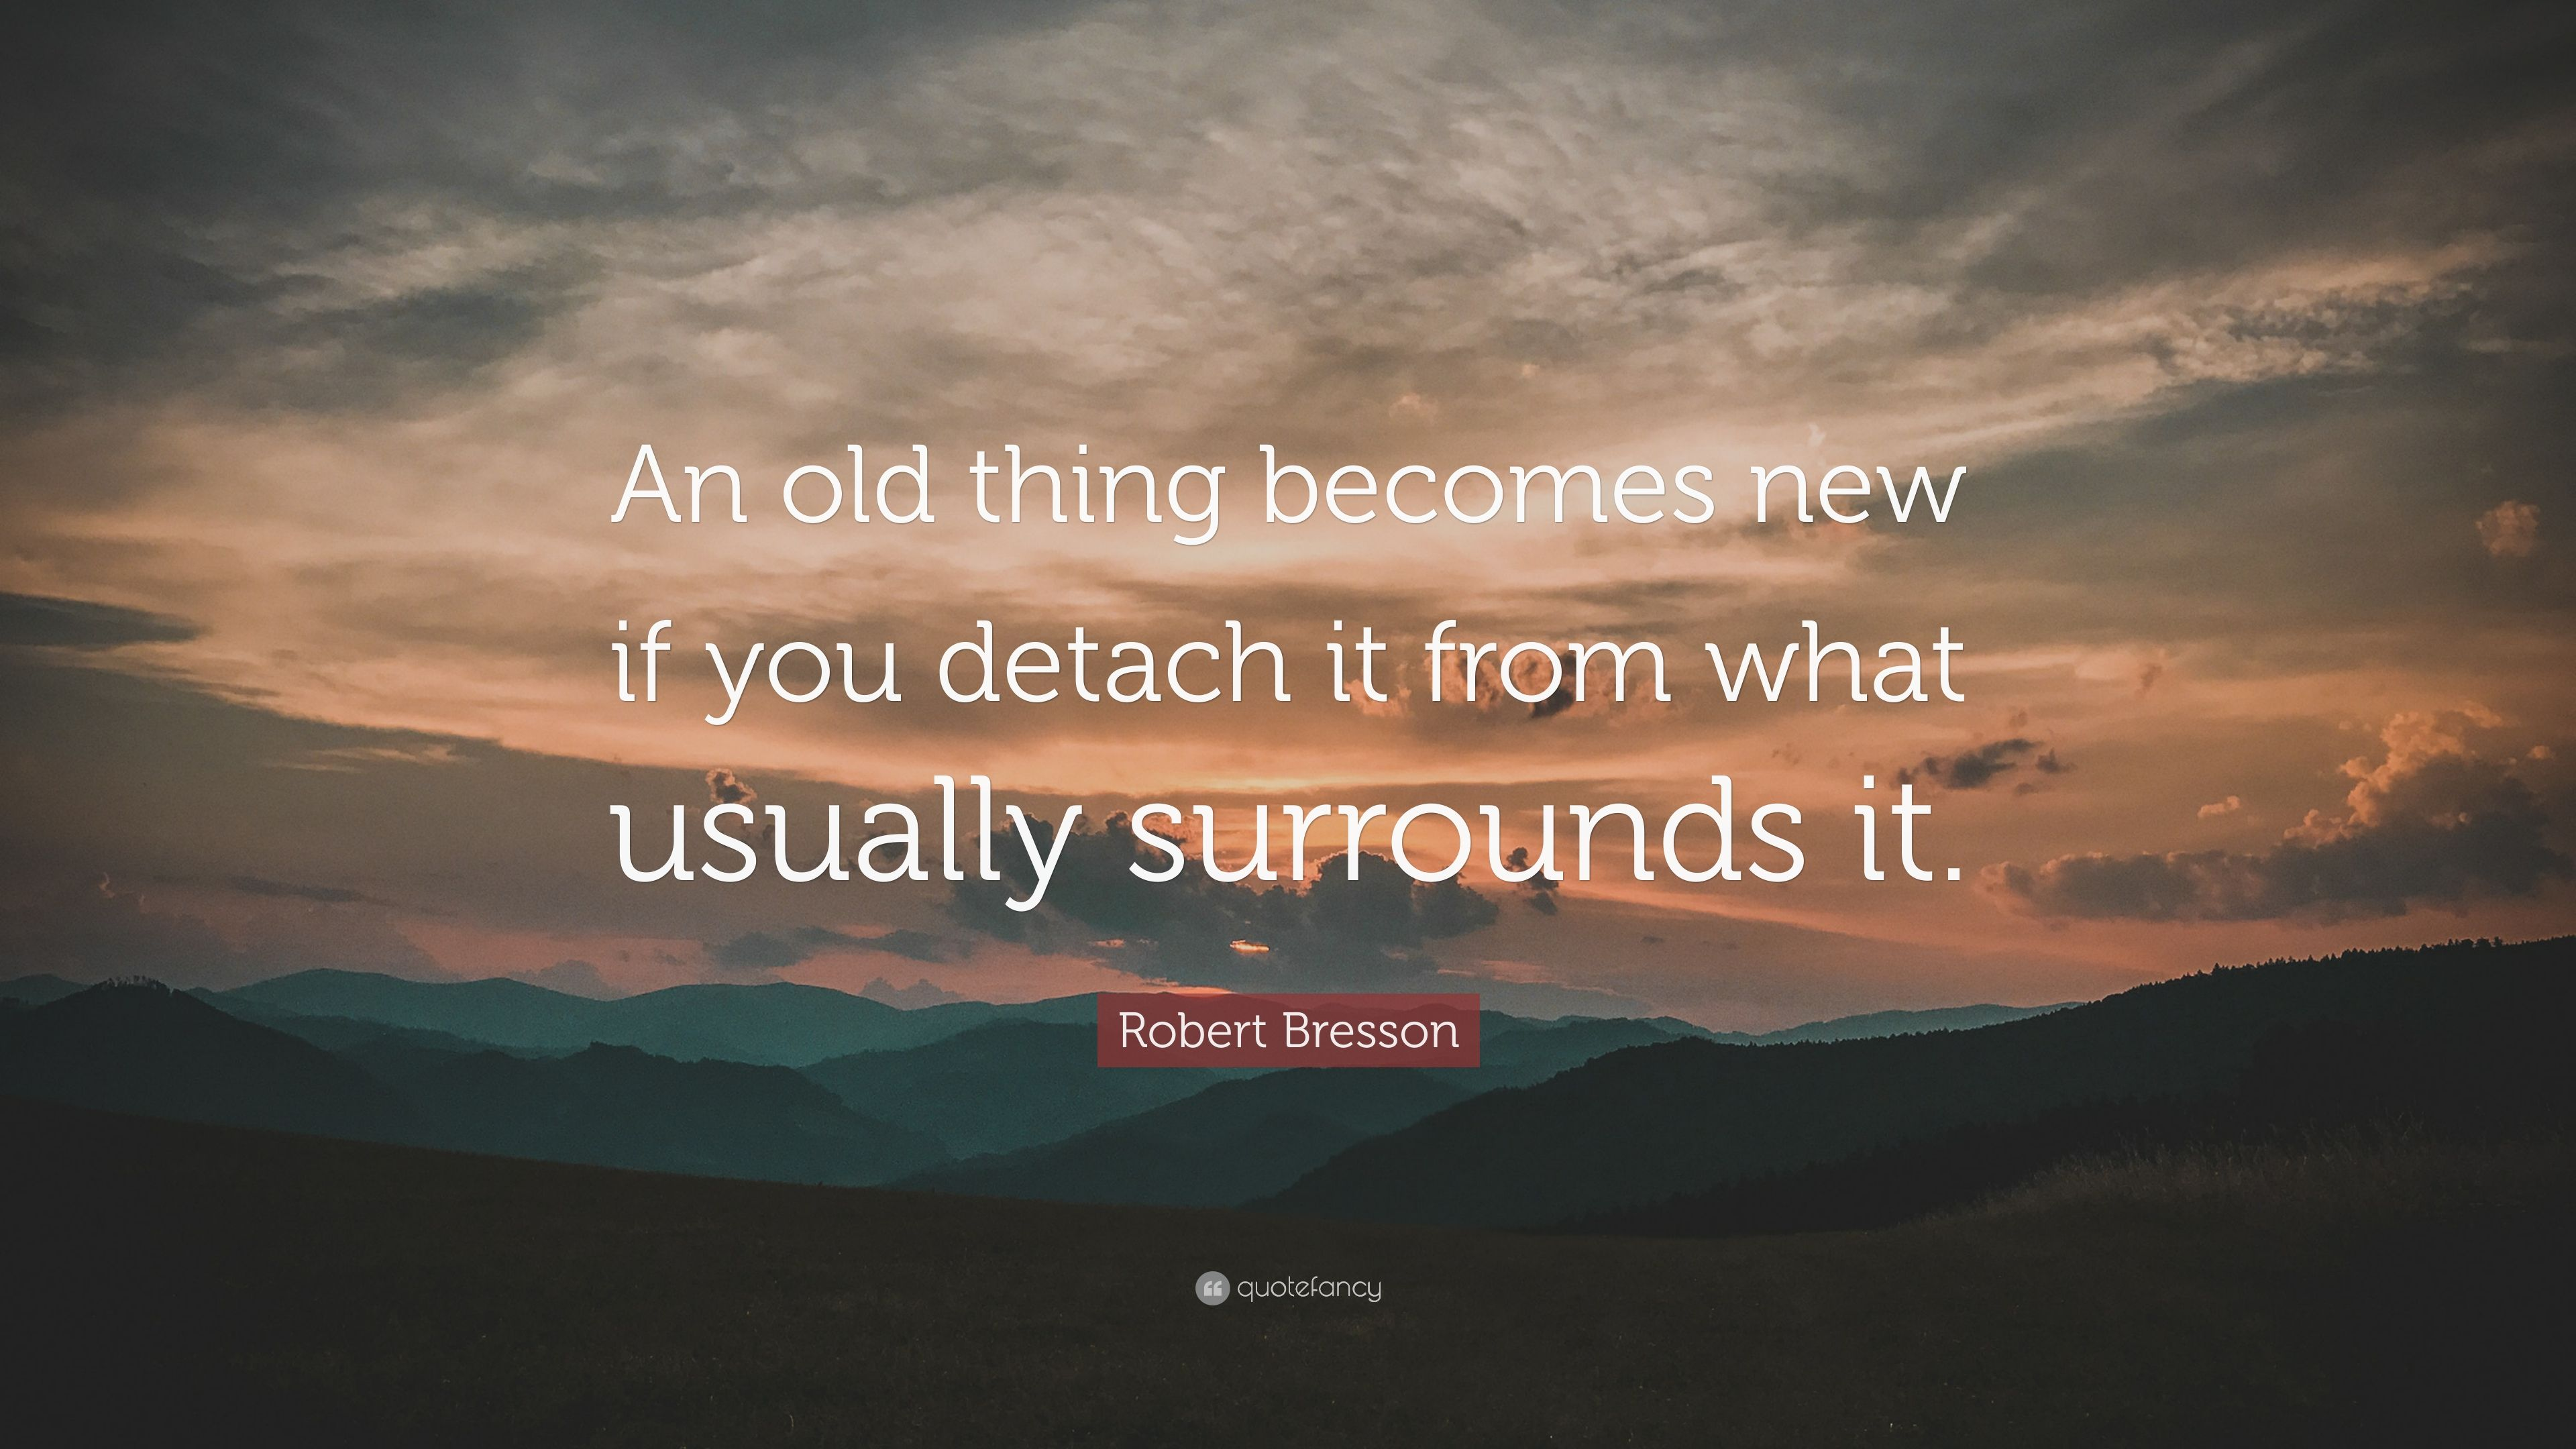 Image result for An old thing becomes new if you detach it from what usually surrounds it.